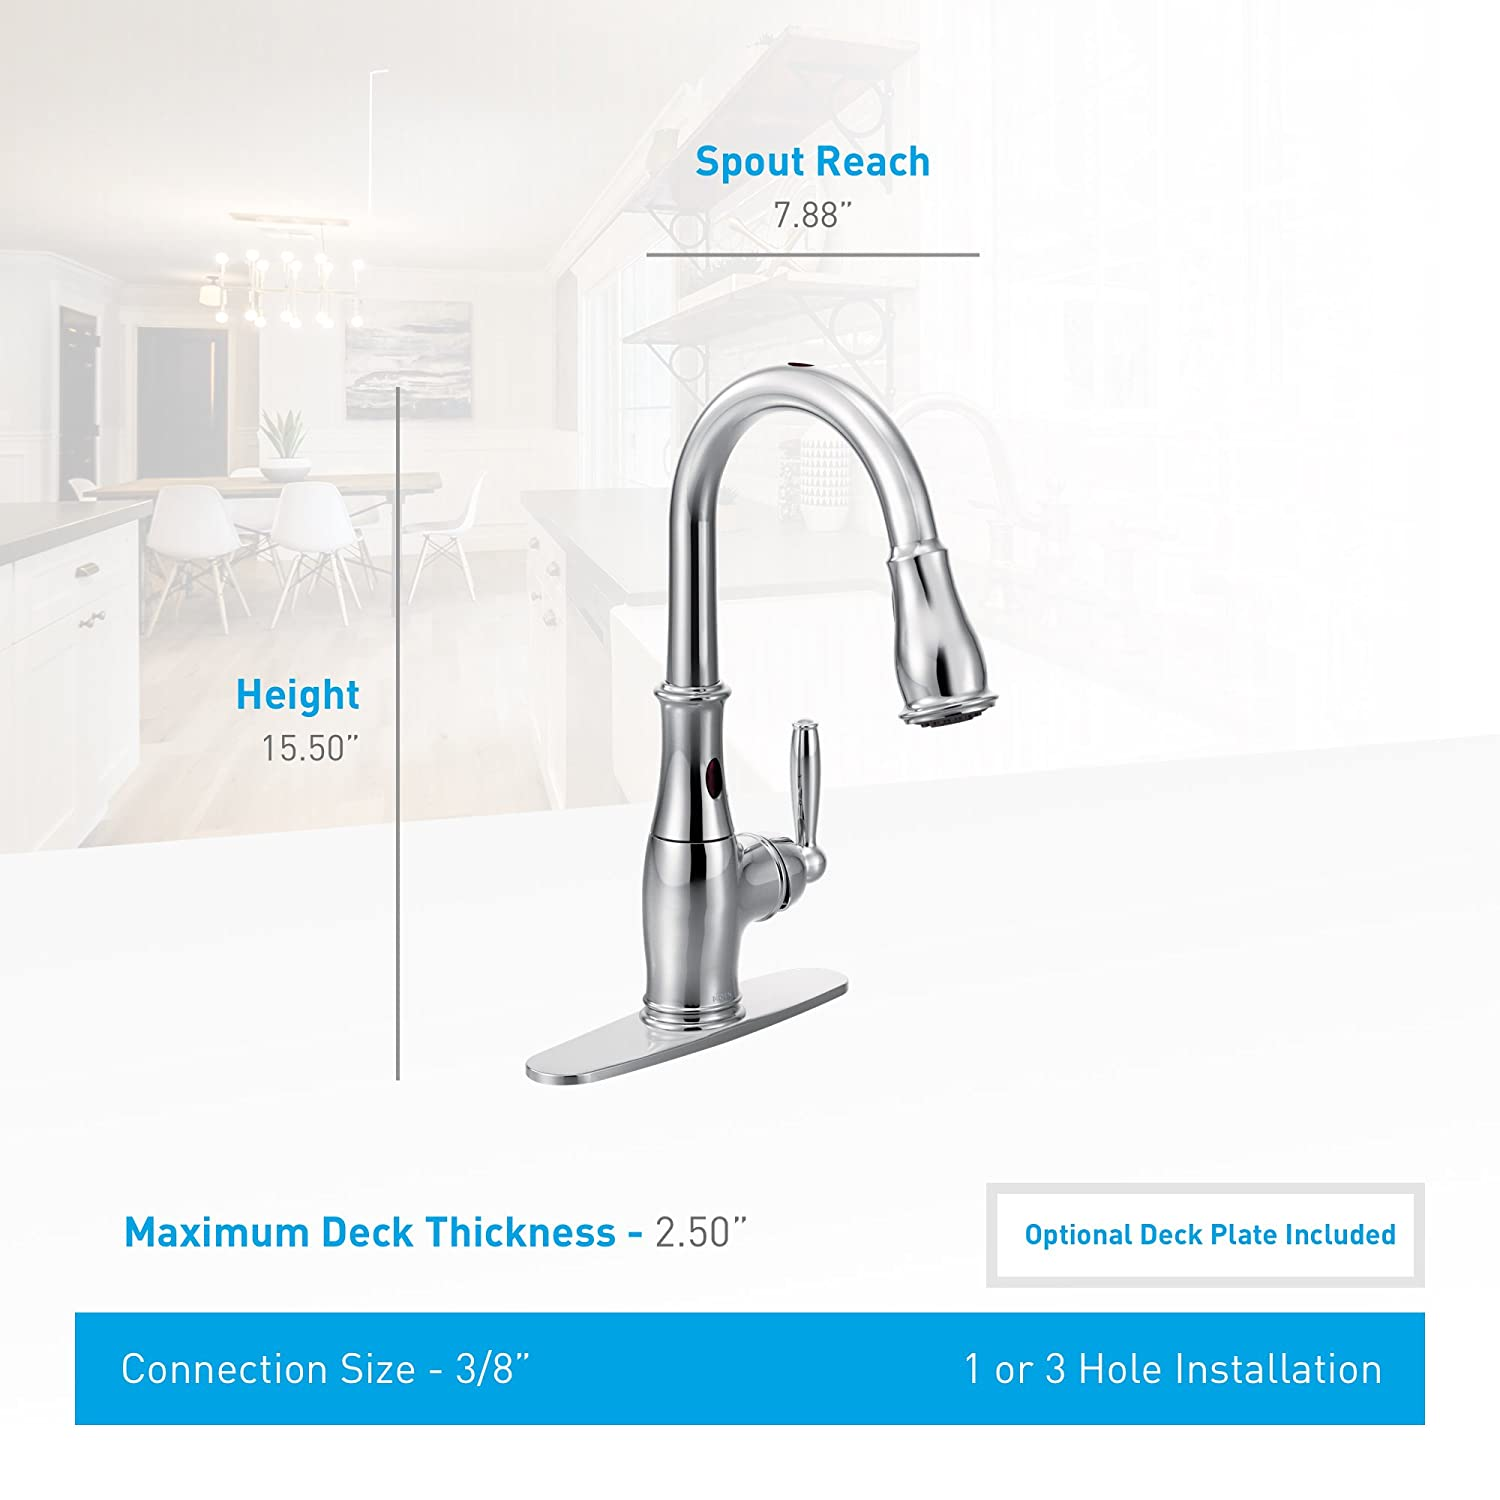 Toy box metal decor wall art shop play children store a180 ebay - Moen Brantford Motionsense Touchless One Handle High Arc Pulldown Kitchen Faucet Featuring Reflex Spot Resist Stainless 7185esrs Touch On Kitchen Sink